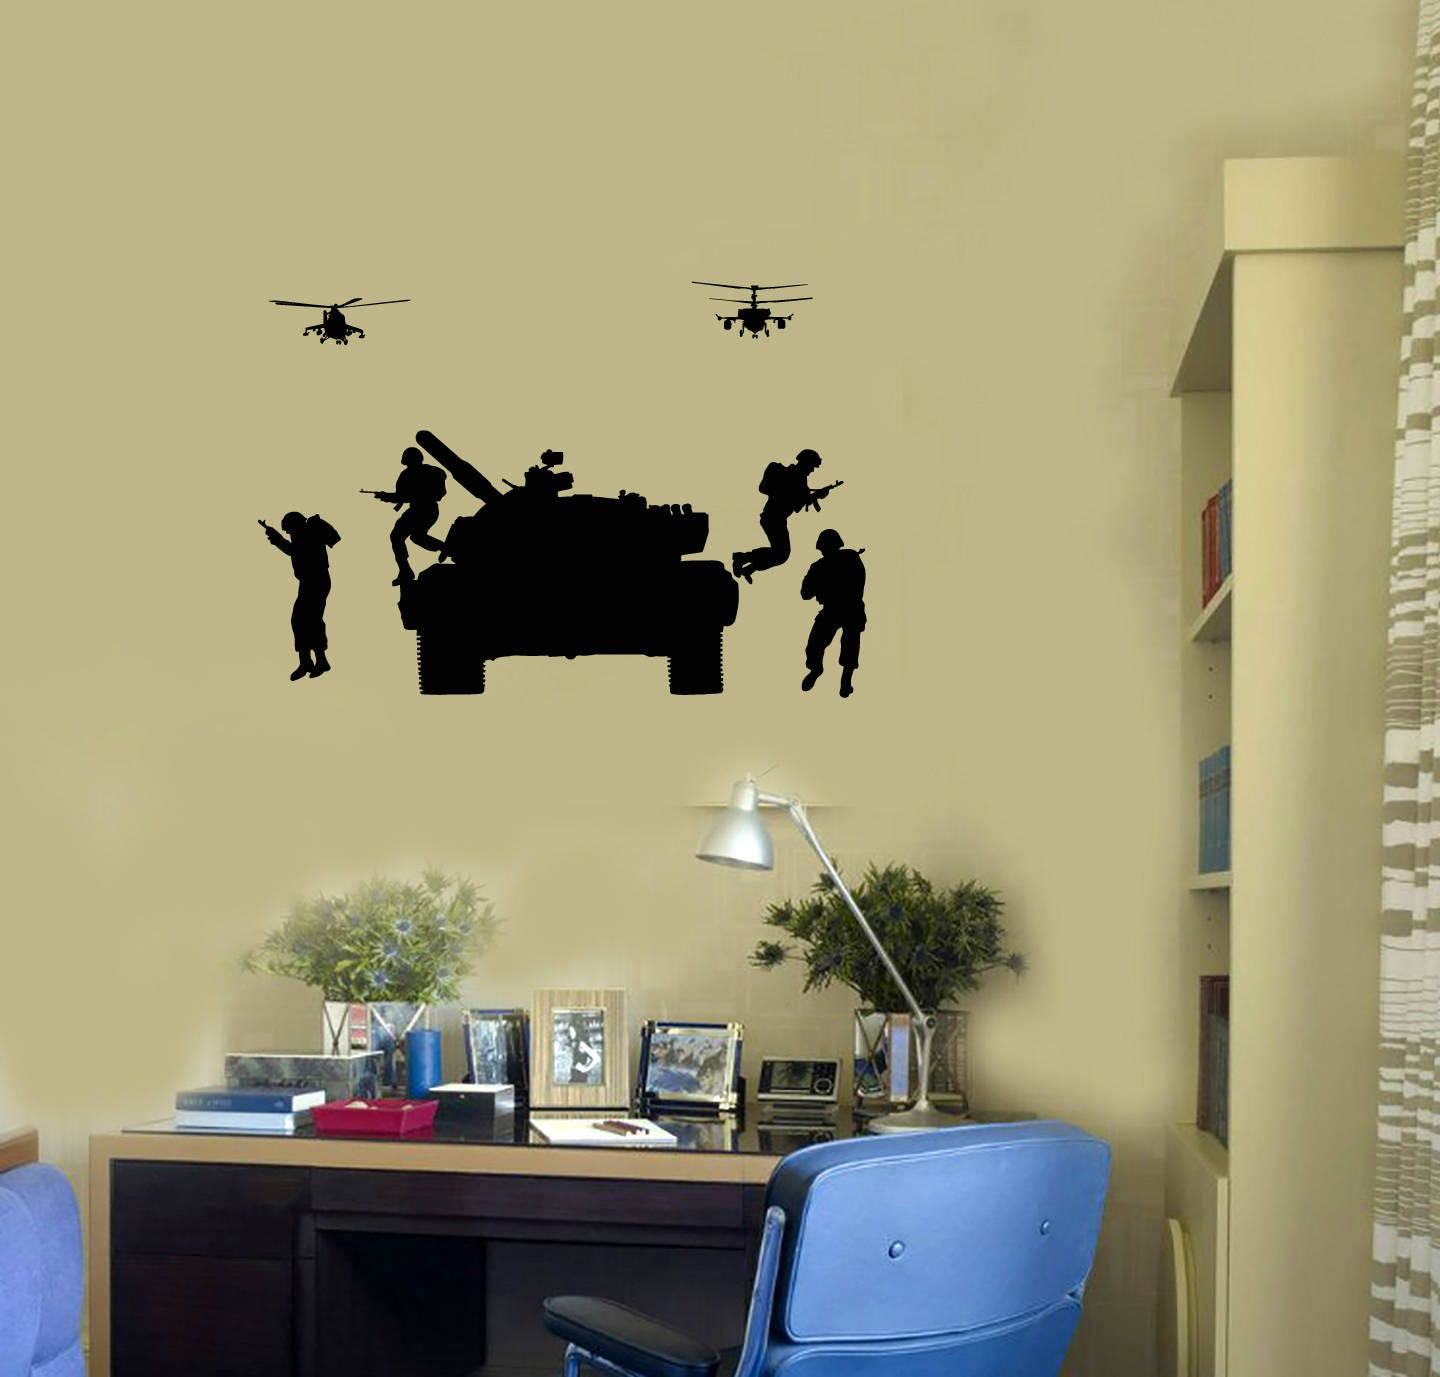 Modern Helicopter Wall Decor Embellishment - Art & Wall Decor ...